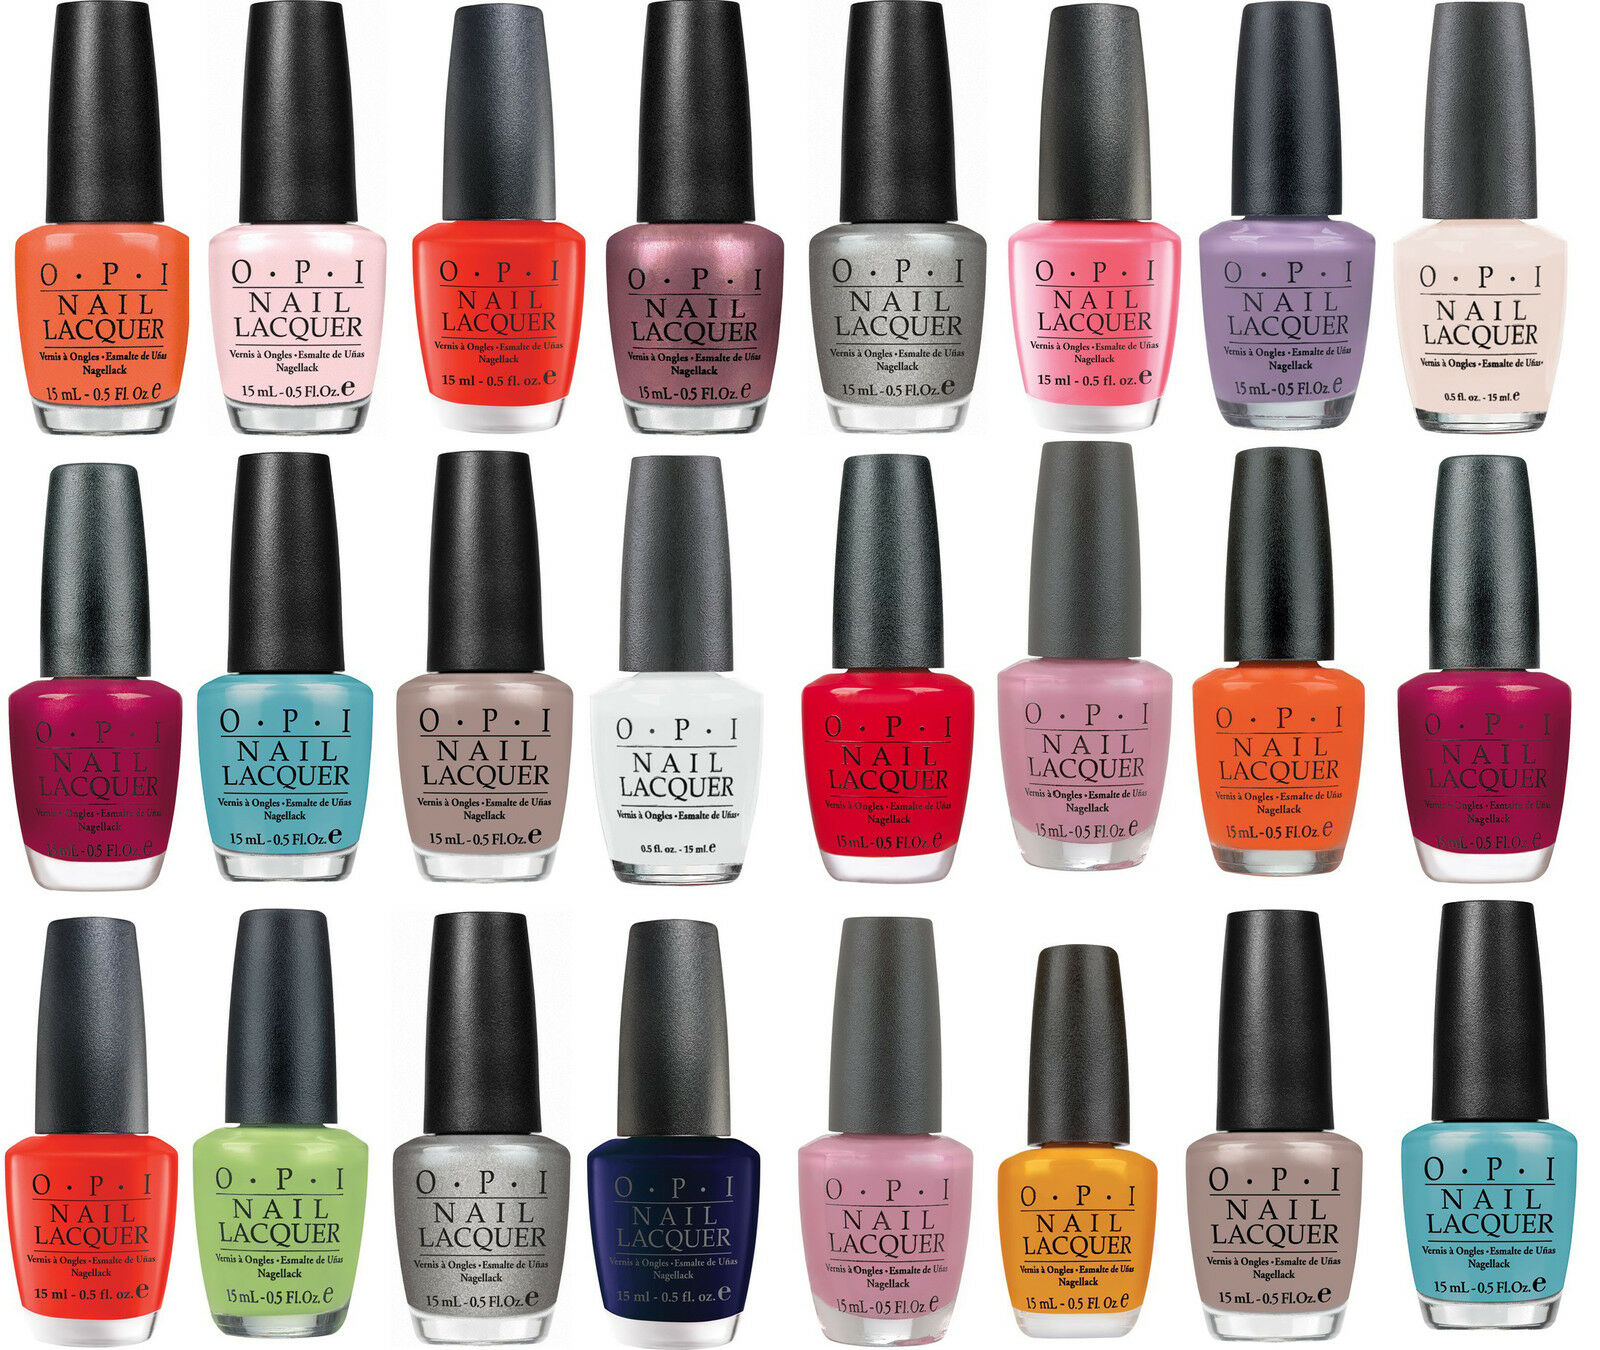 One of the hardest parts of accepting that it's finally fall is giving up the bright, punchy orange and neon pink nail polishes of summer. All those eye-catching shades rotate to the back of the medicine cabinet, while the blood reds and cool blues move to the top-shelf spot.